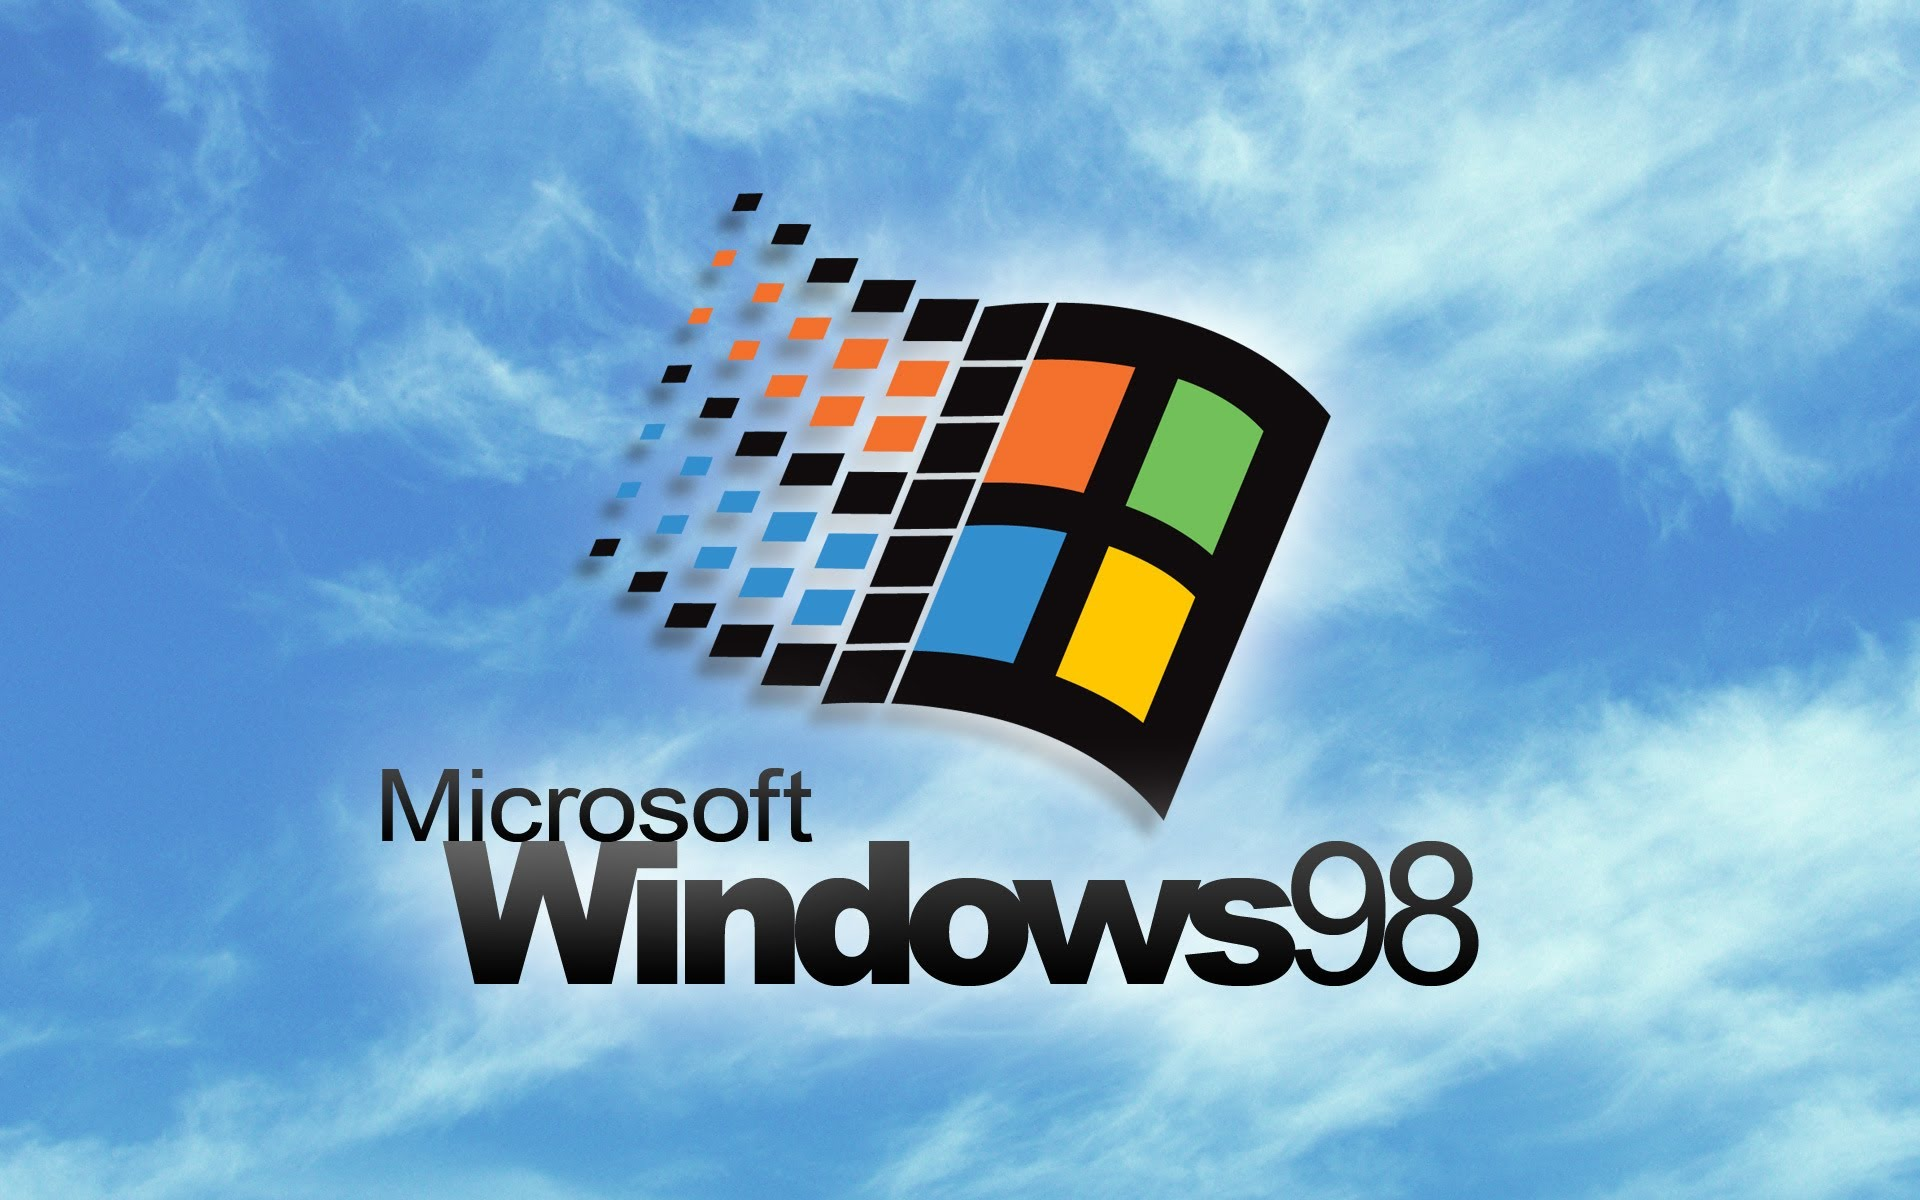 Is a Windows 98 machine usable in 2017?